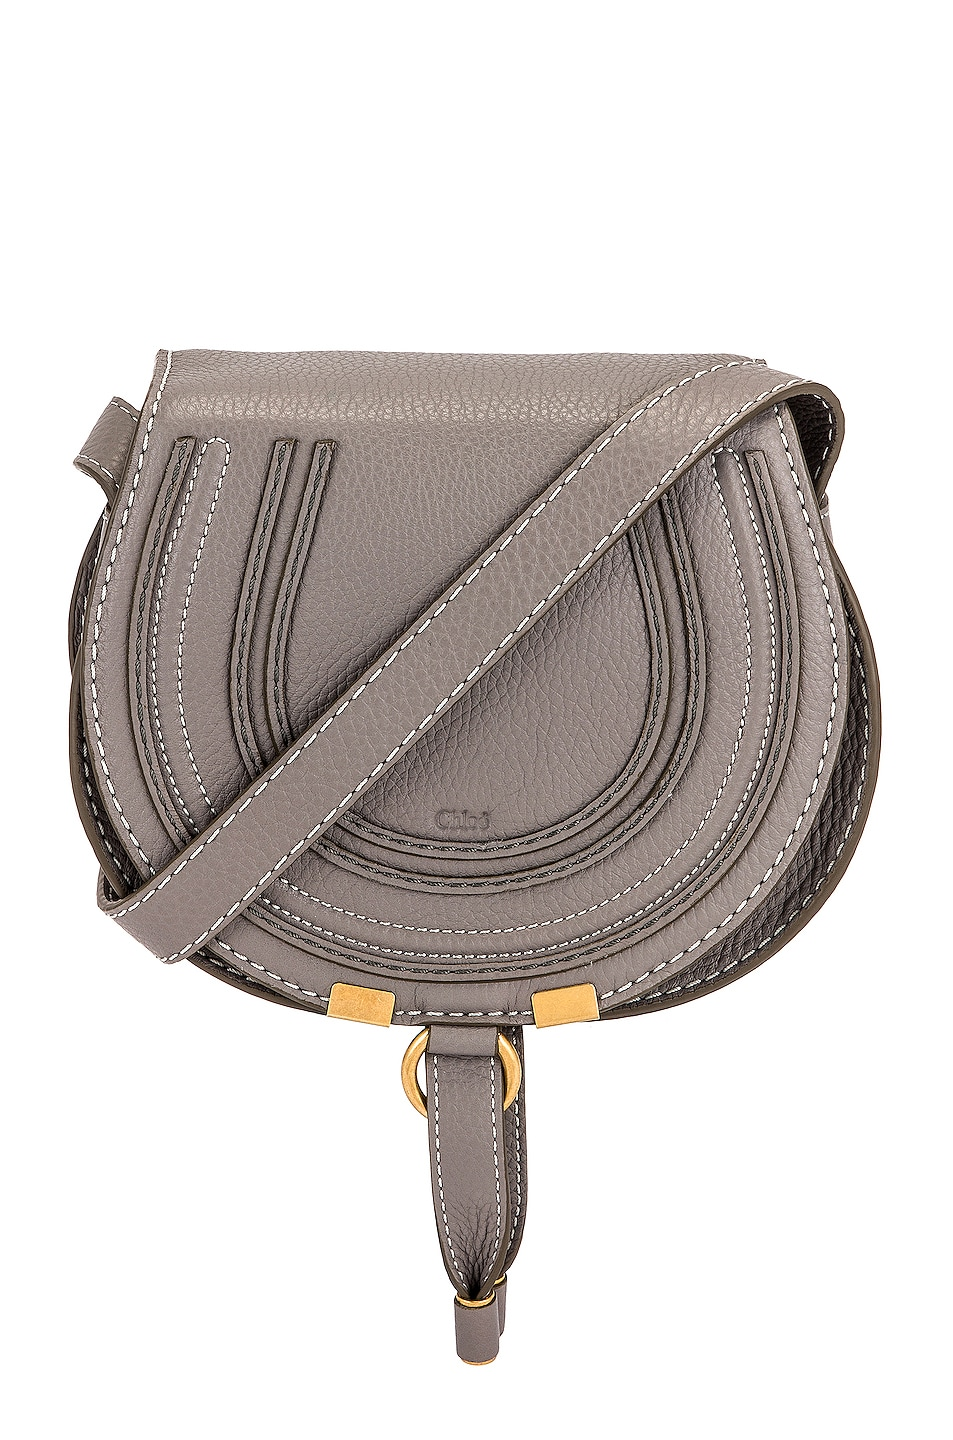 Chloe Small Marcie Saddle Bag in Cashmere Grey | FWRD